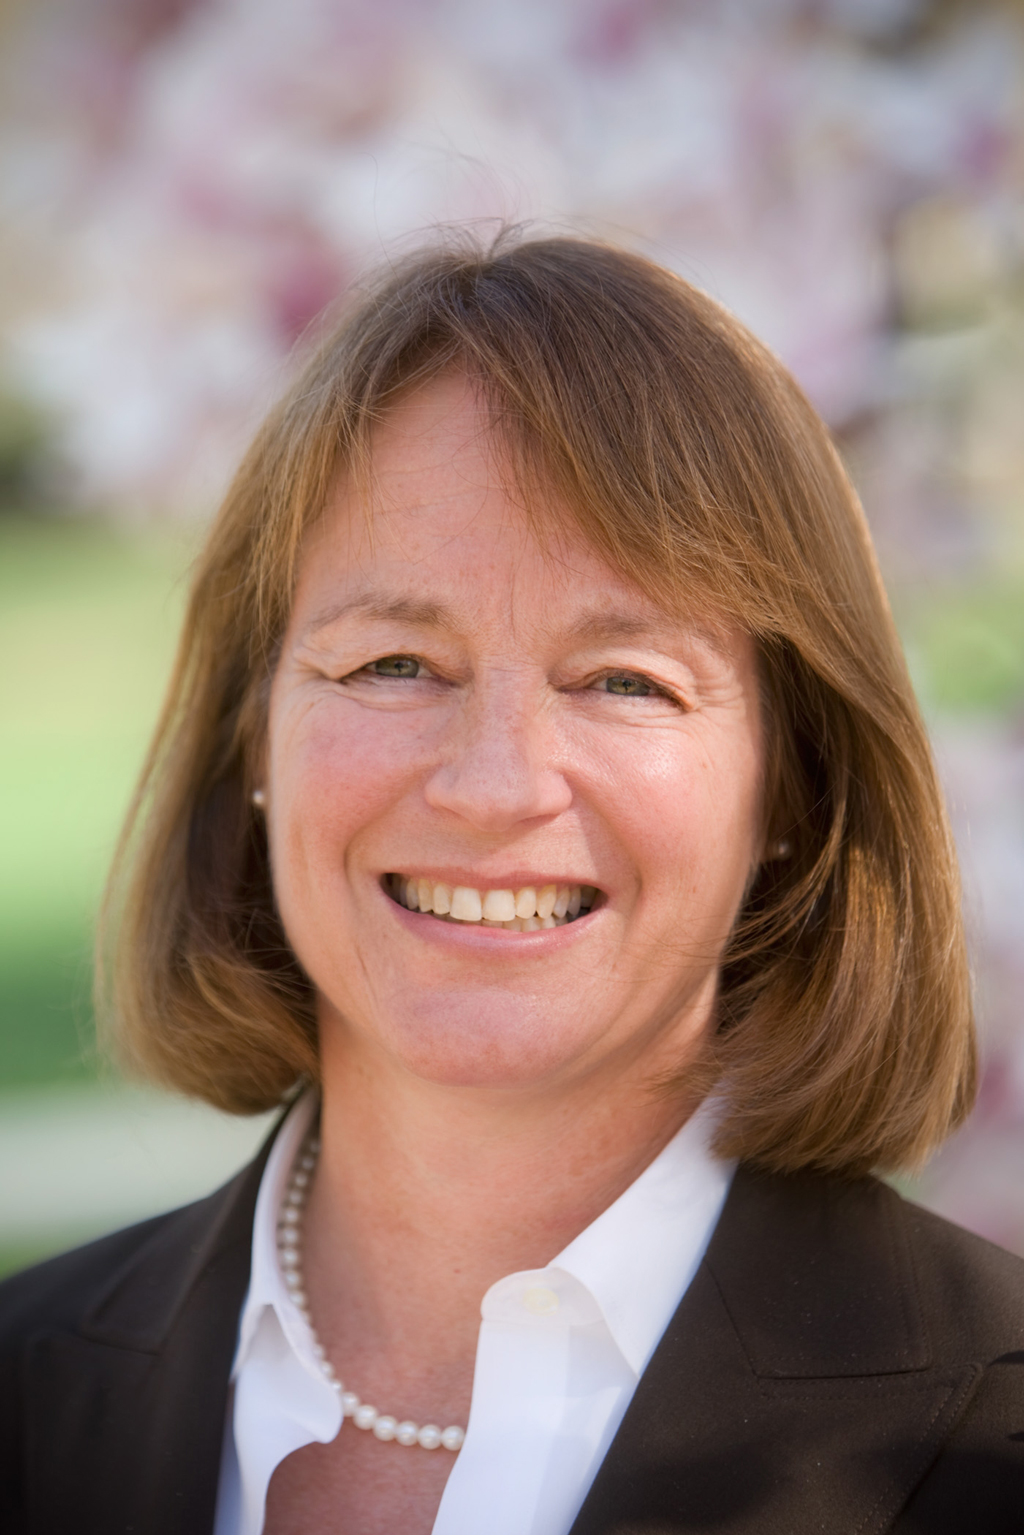 Alice Gast, President of Lehigh University